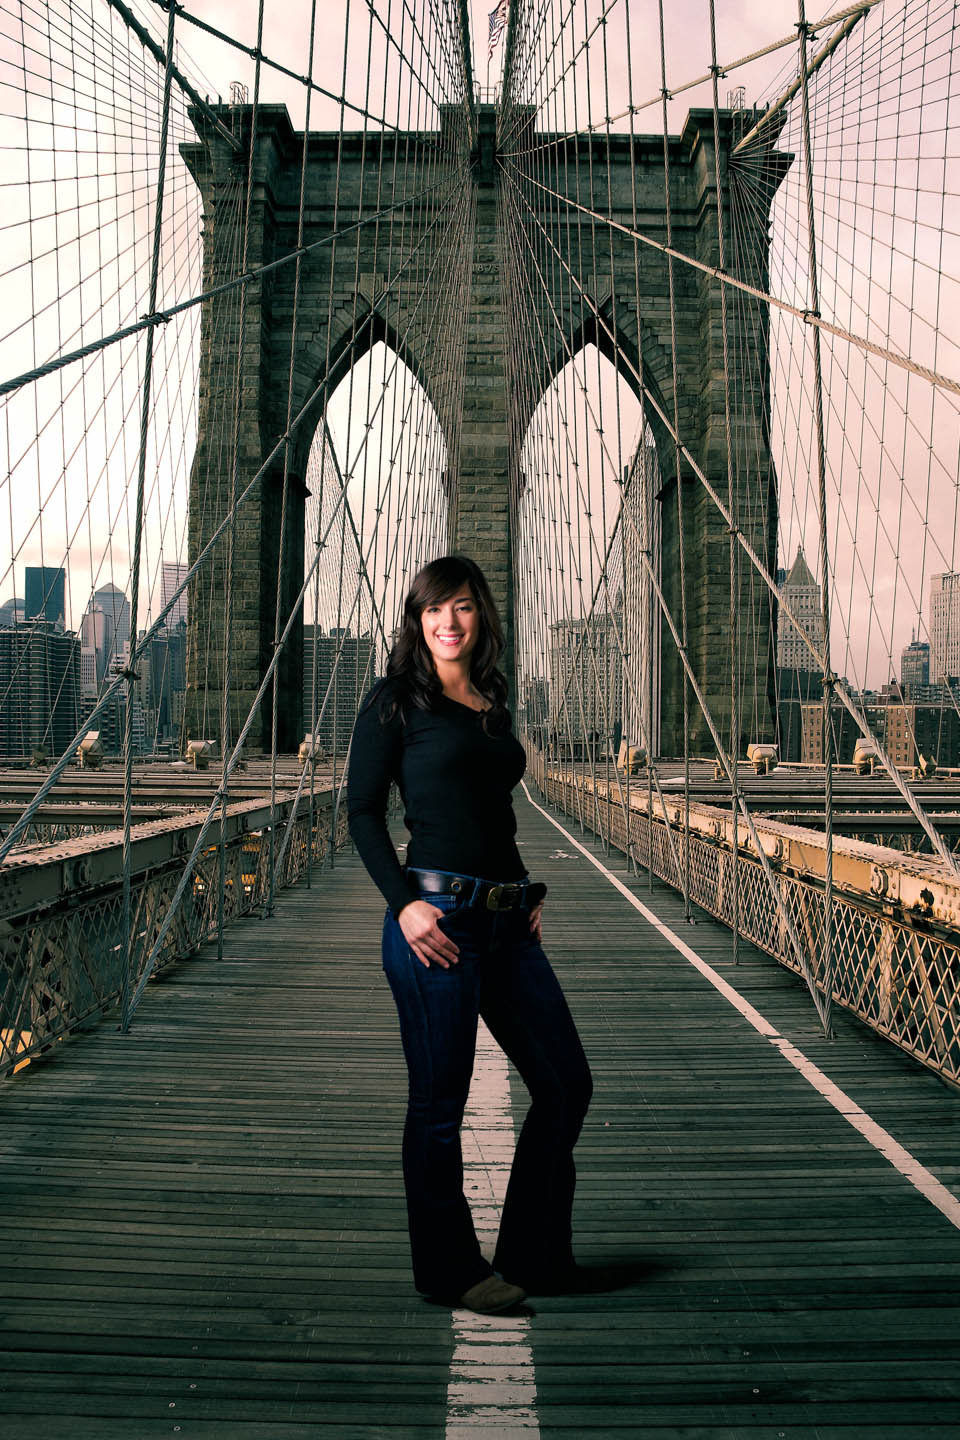 She was a fan of New York so I photoshopped her into New York's Brooklyn Bridge